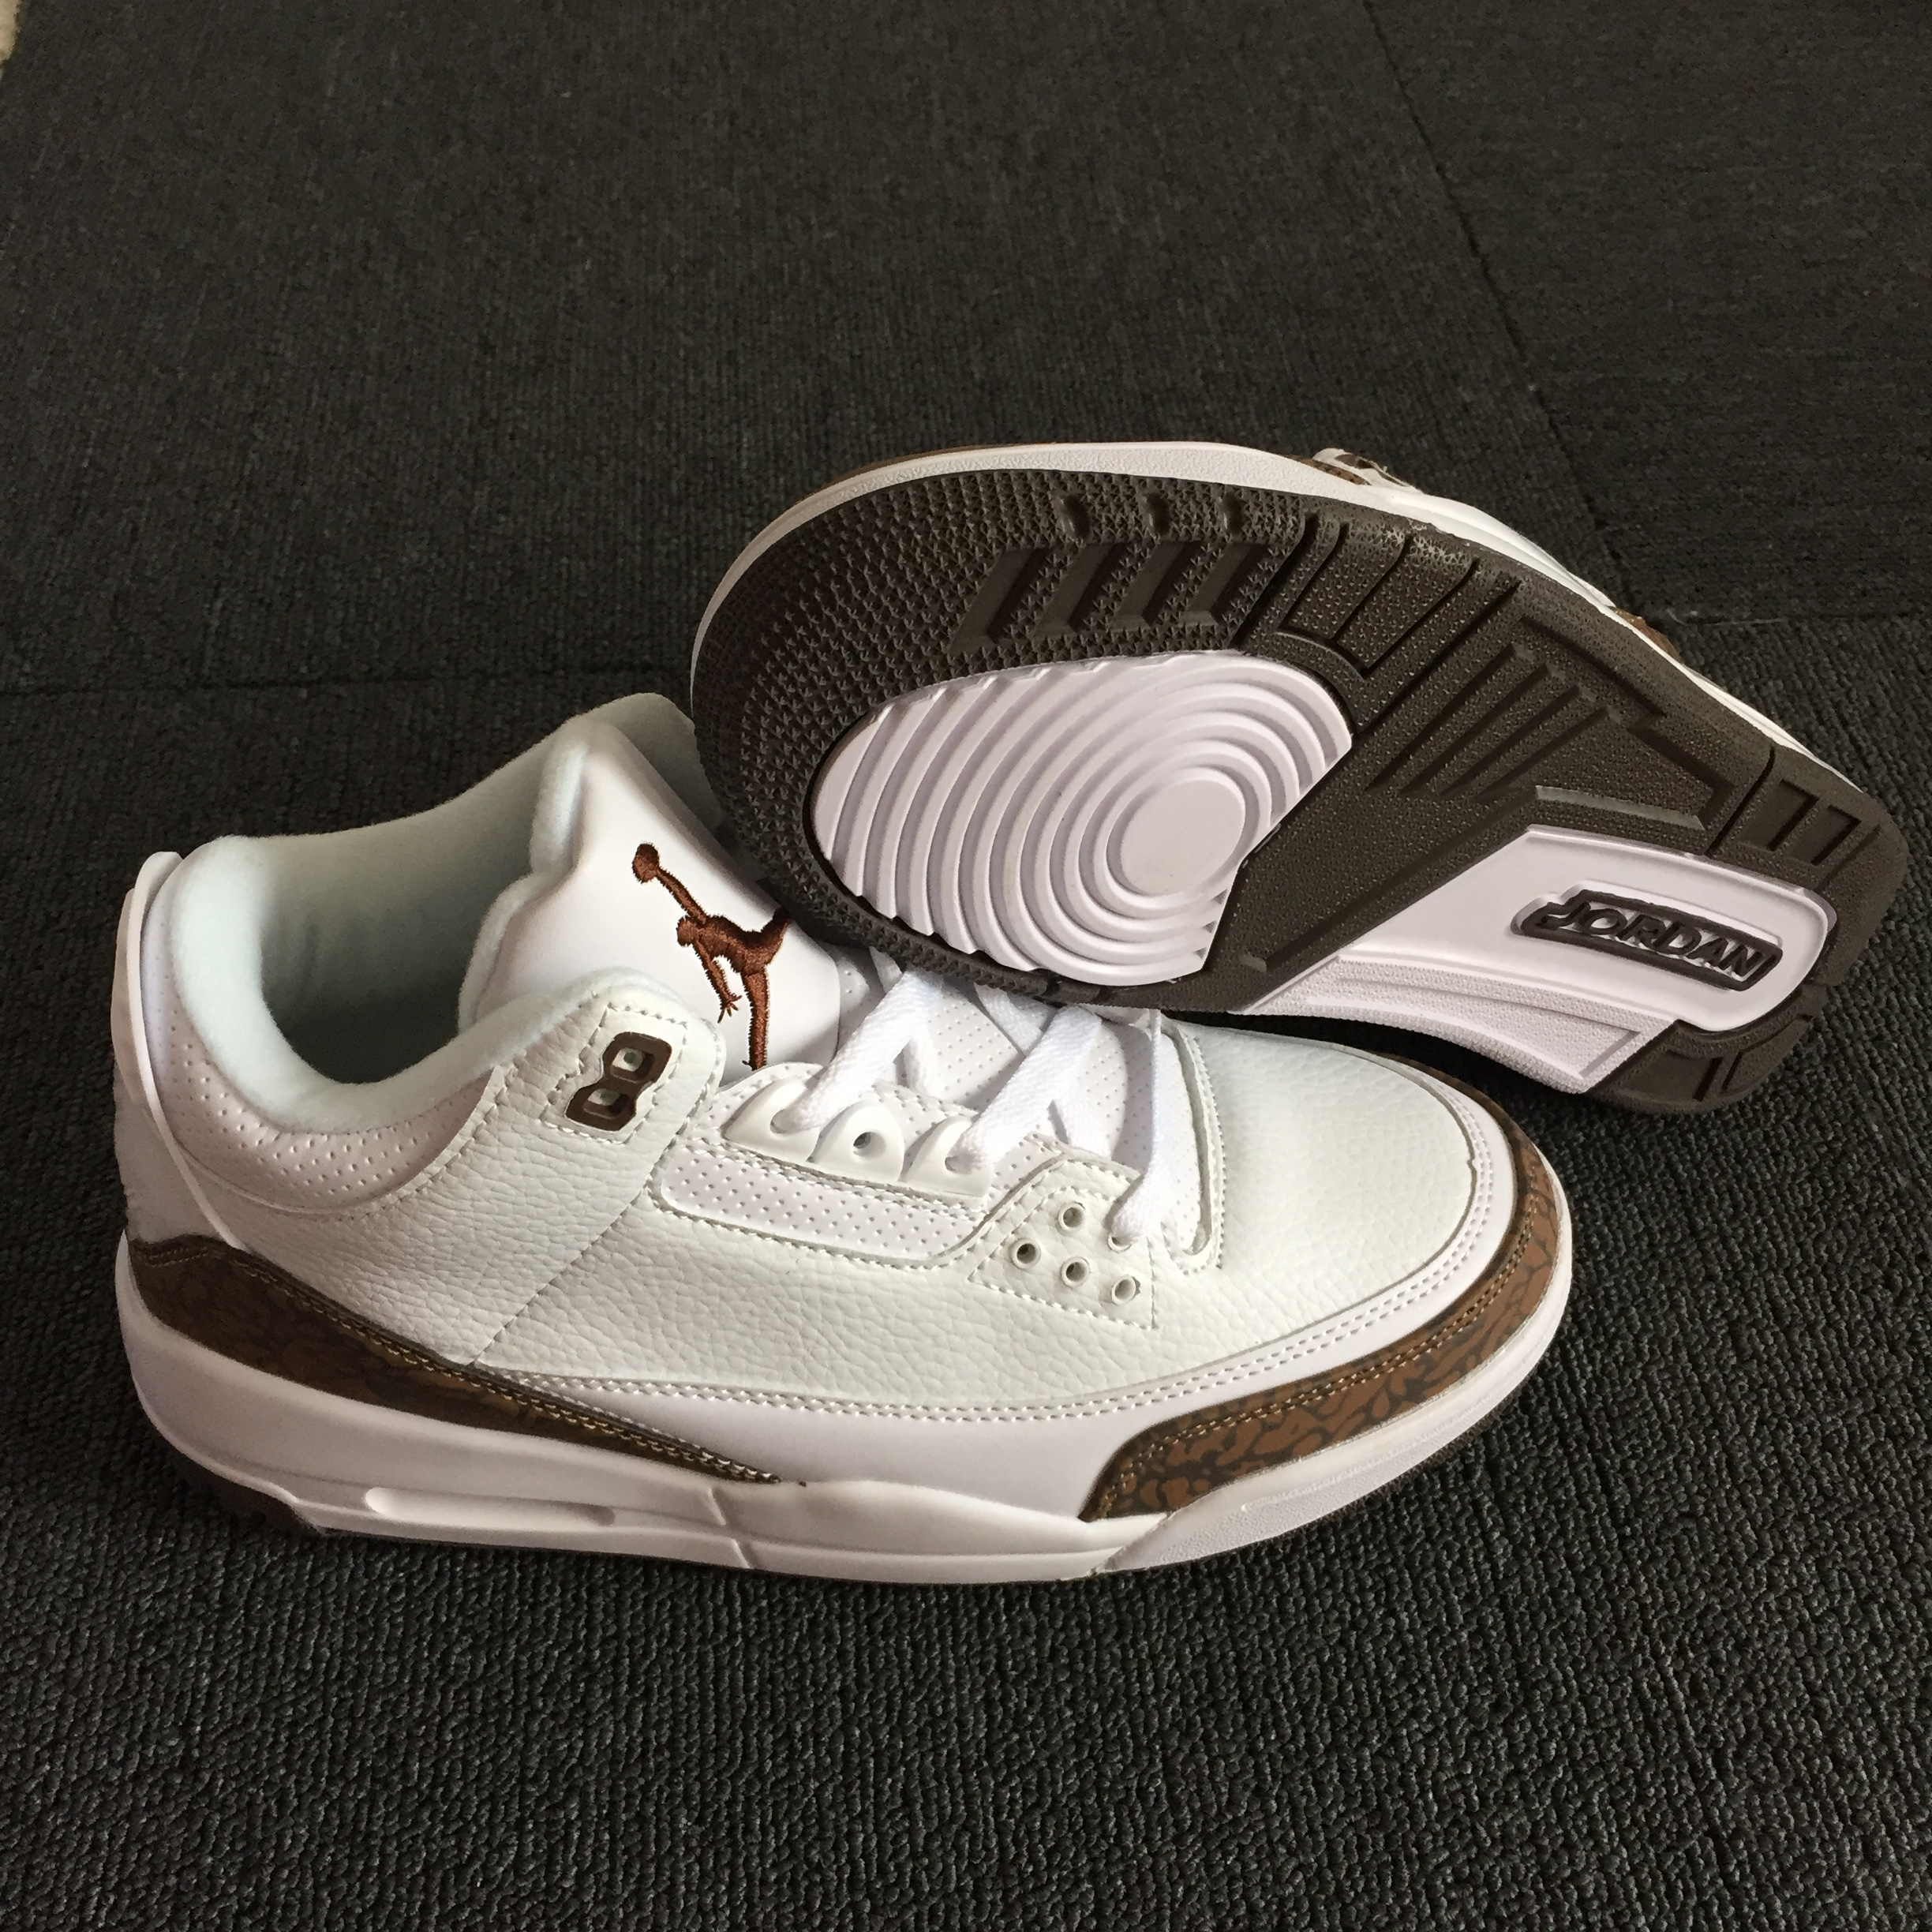 New Air Jordan 3 Retro White Brown Shoes